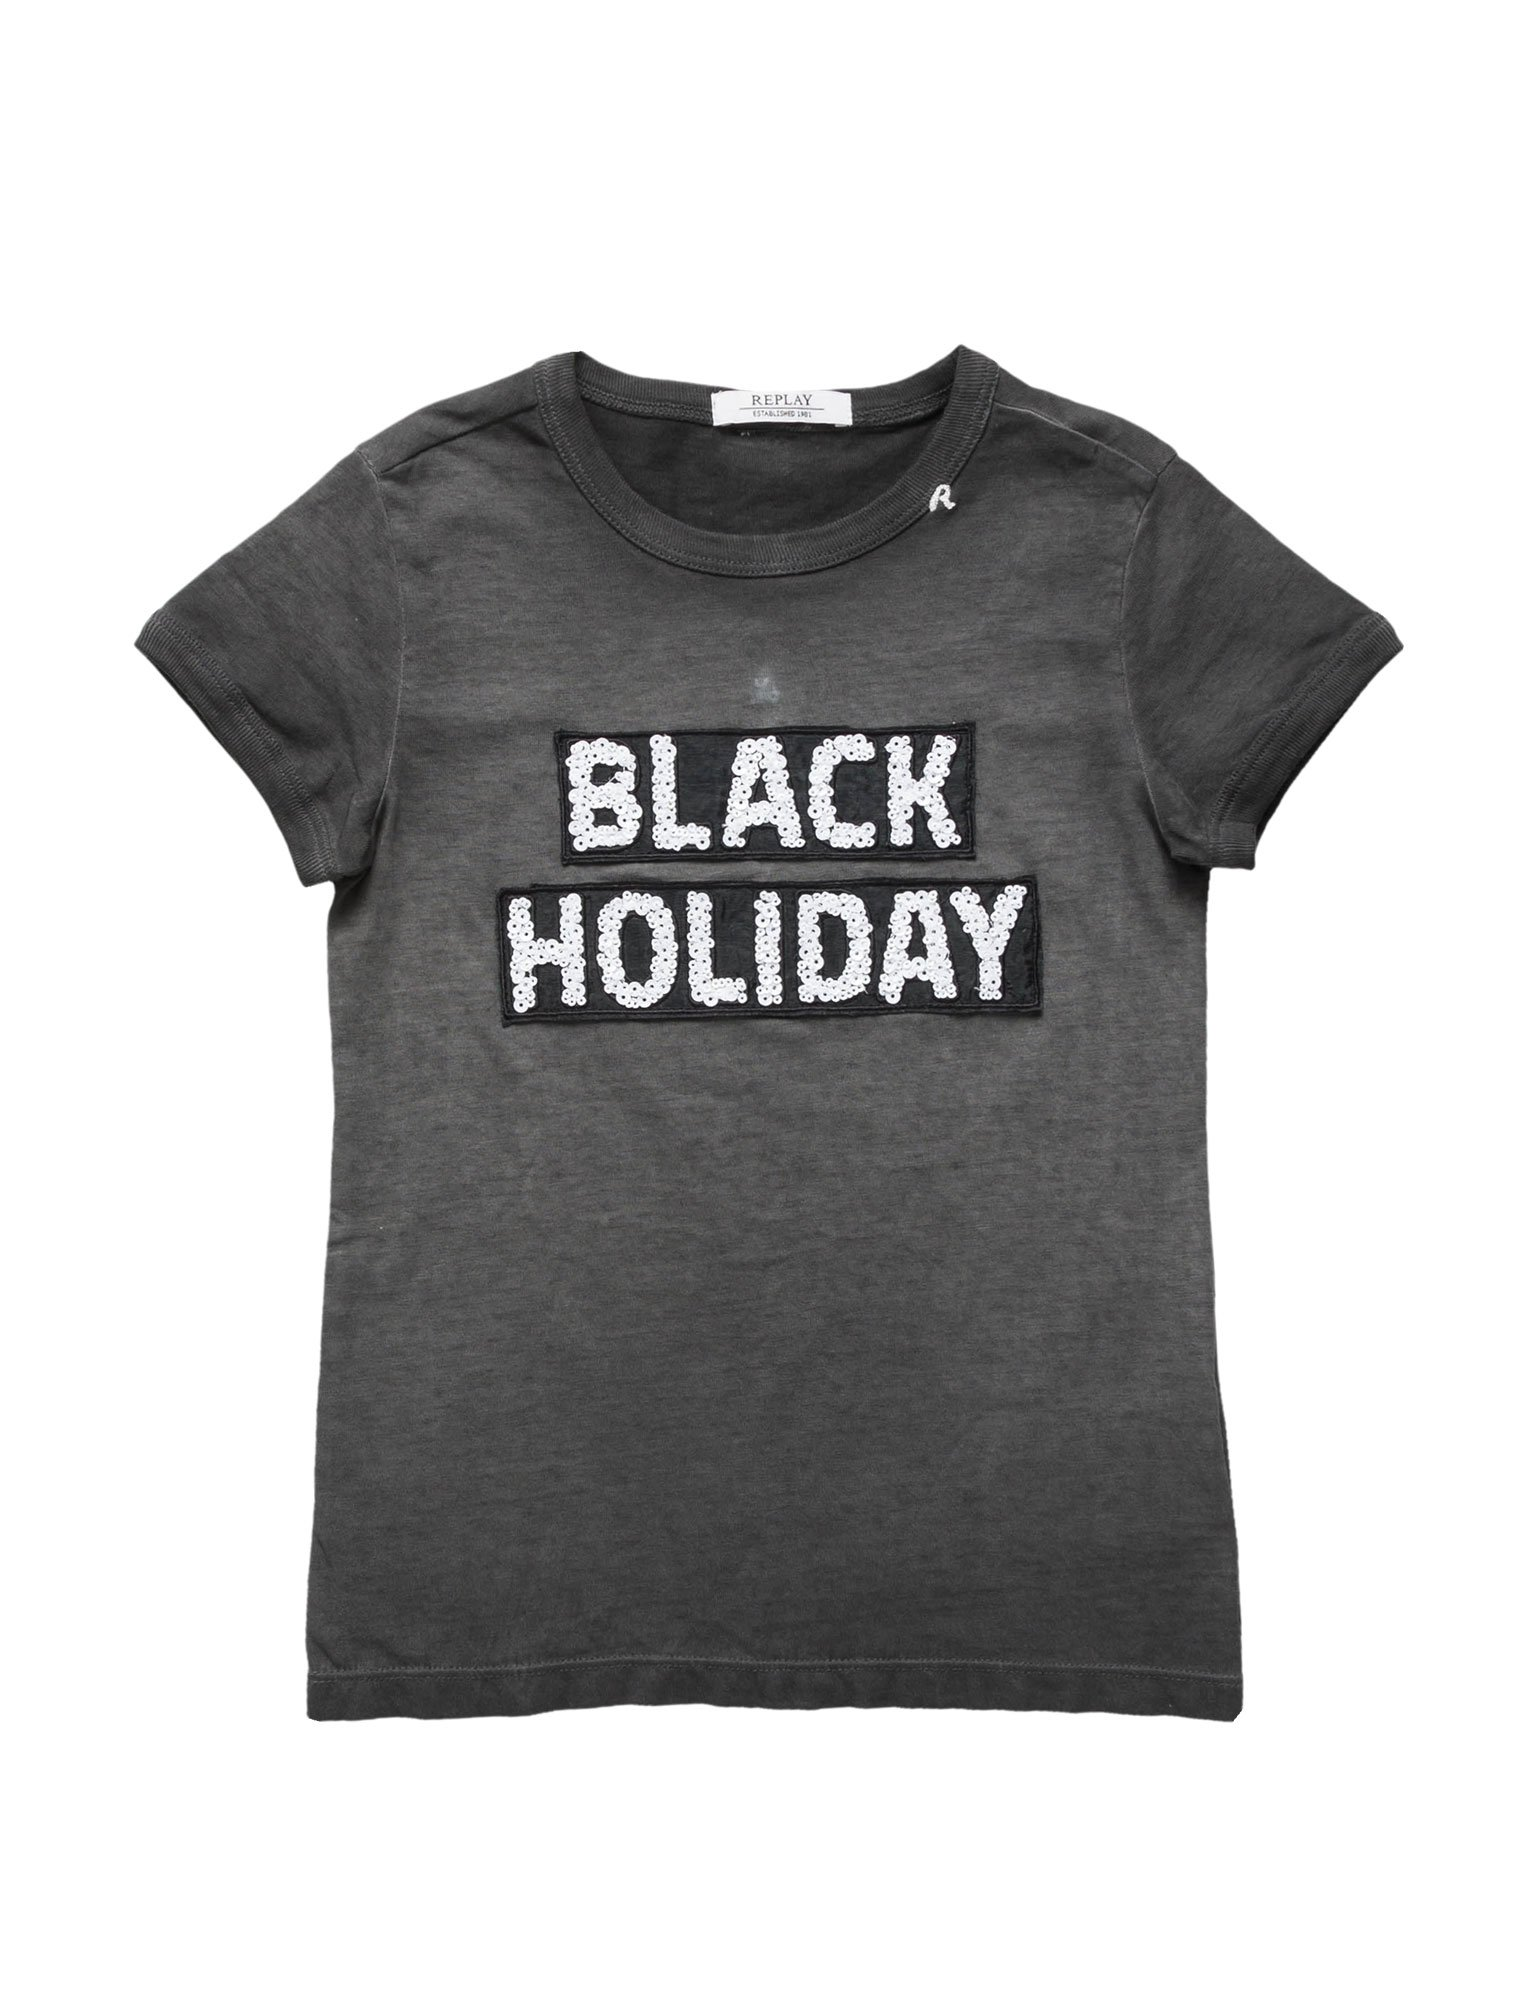 Replay Garment Dyed Cotton Jersey Girl's T-Shirt In Black In Size 12 Years Black